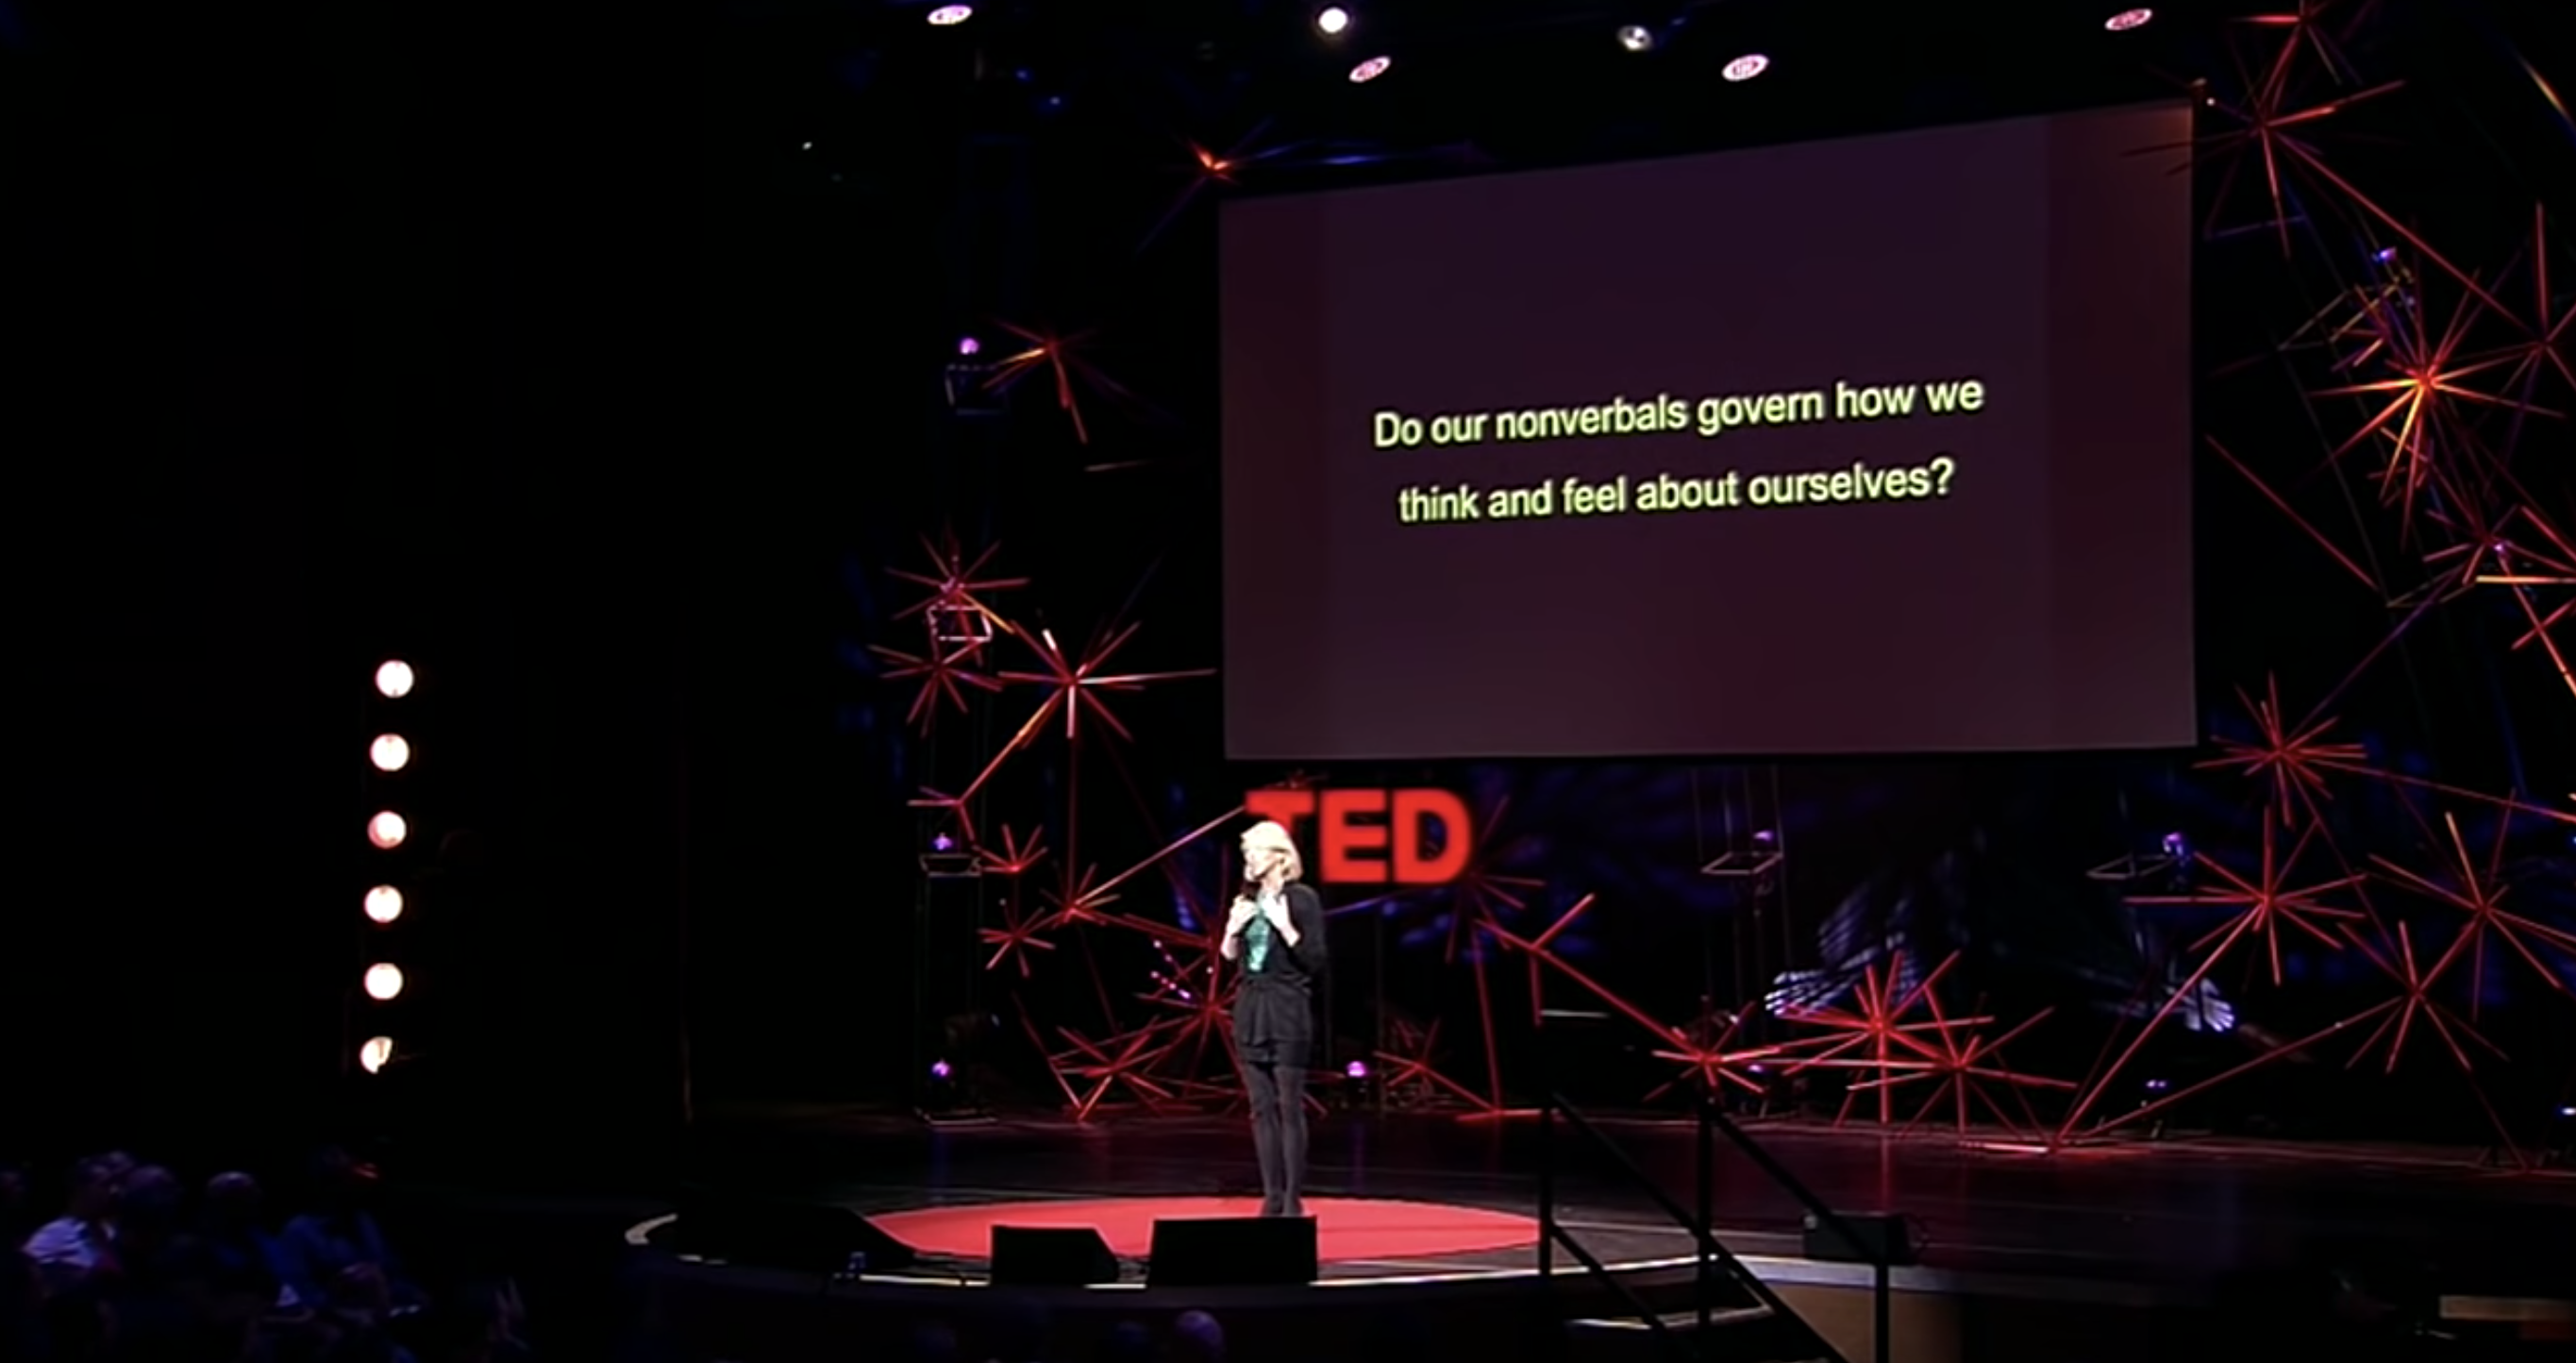 amy cuddey social psychologist giving ted talk on stage